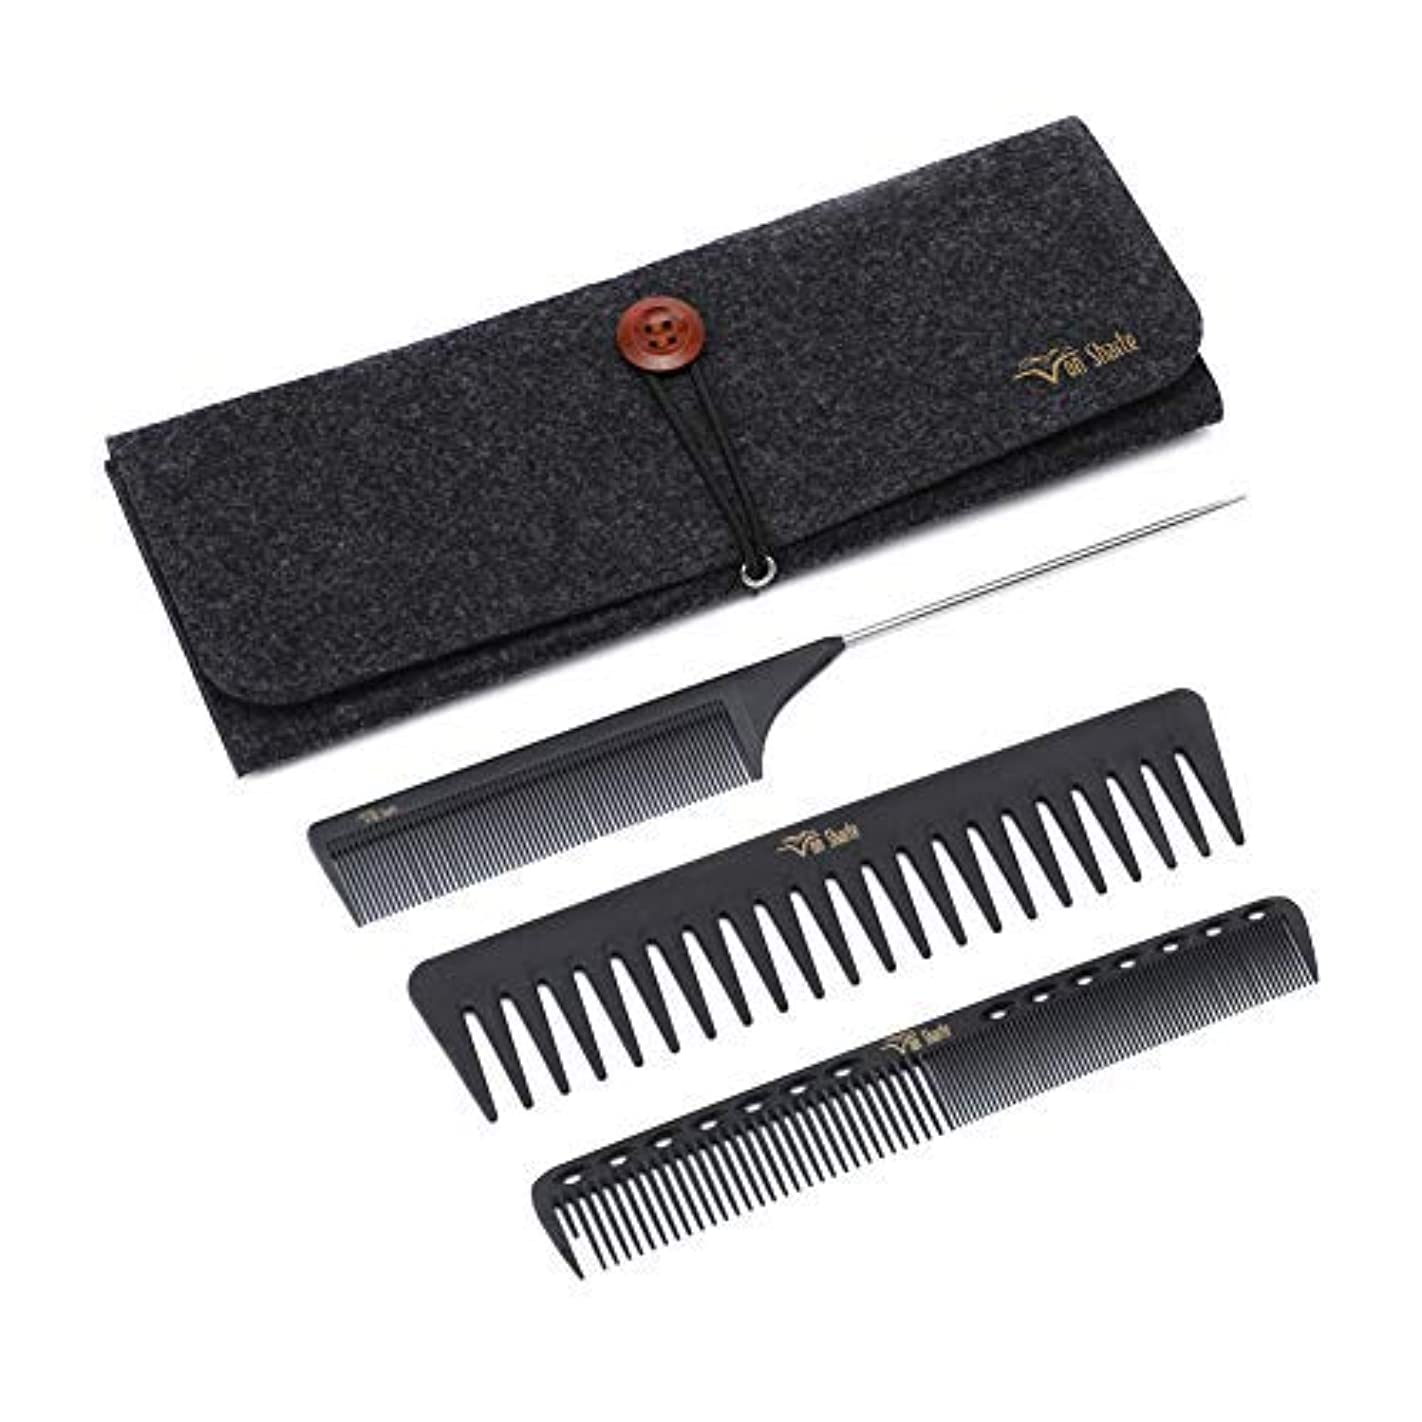 良心麦芽操作Styling Comb Set,Hairdresser Barber Comb Cutting Hair Comb Carbon Fiber Wide Tooth Comb Metal Rat Pin Tail Comb Salon 100% Anti Static 230℃ Heat Resistant(Styling Comb Set C932Z02B) [並行輸入品]